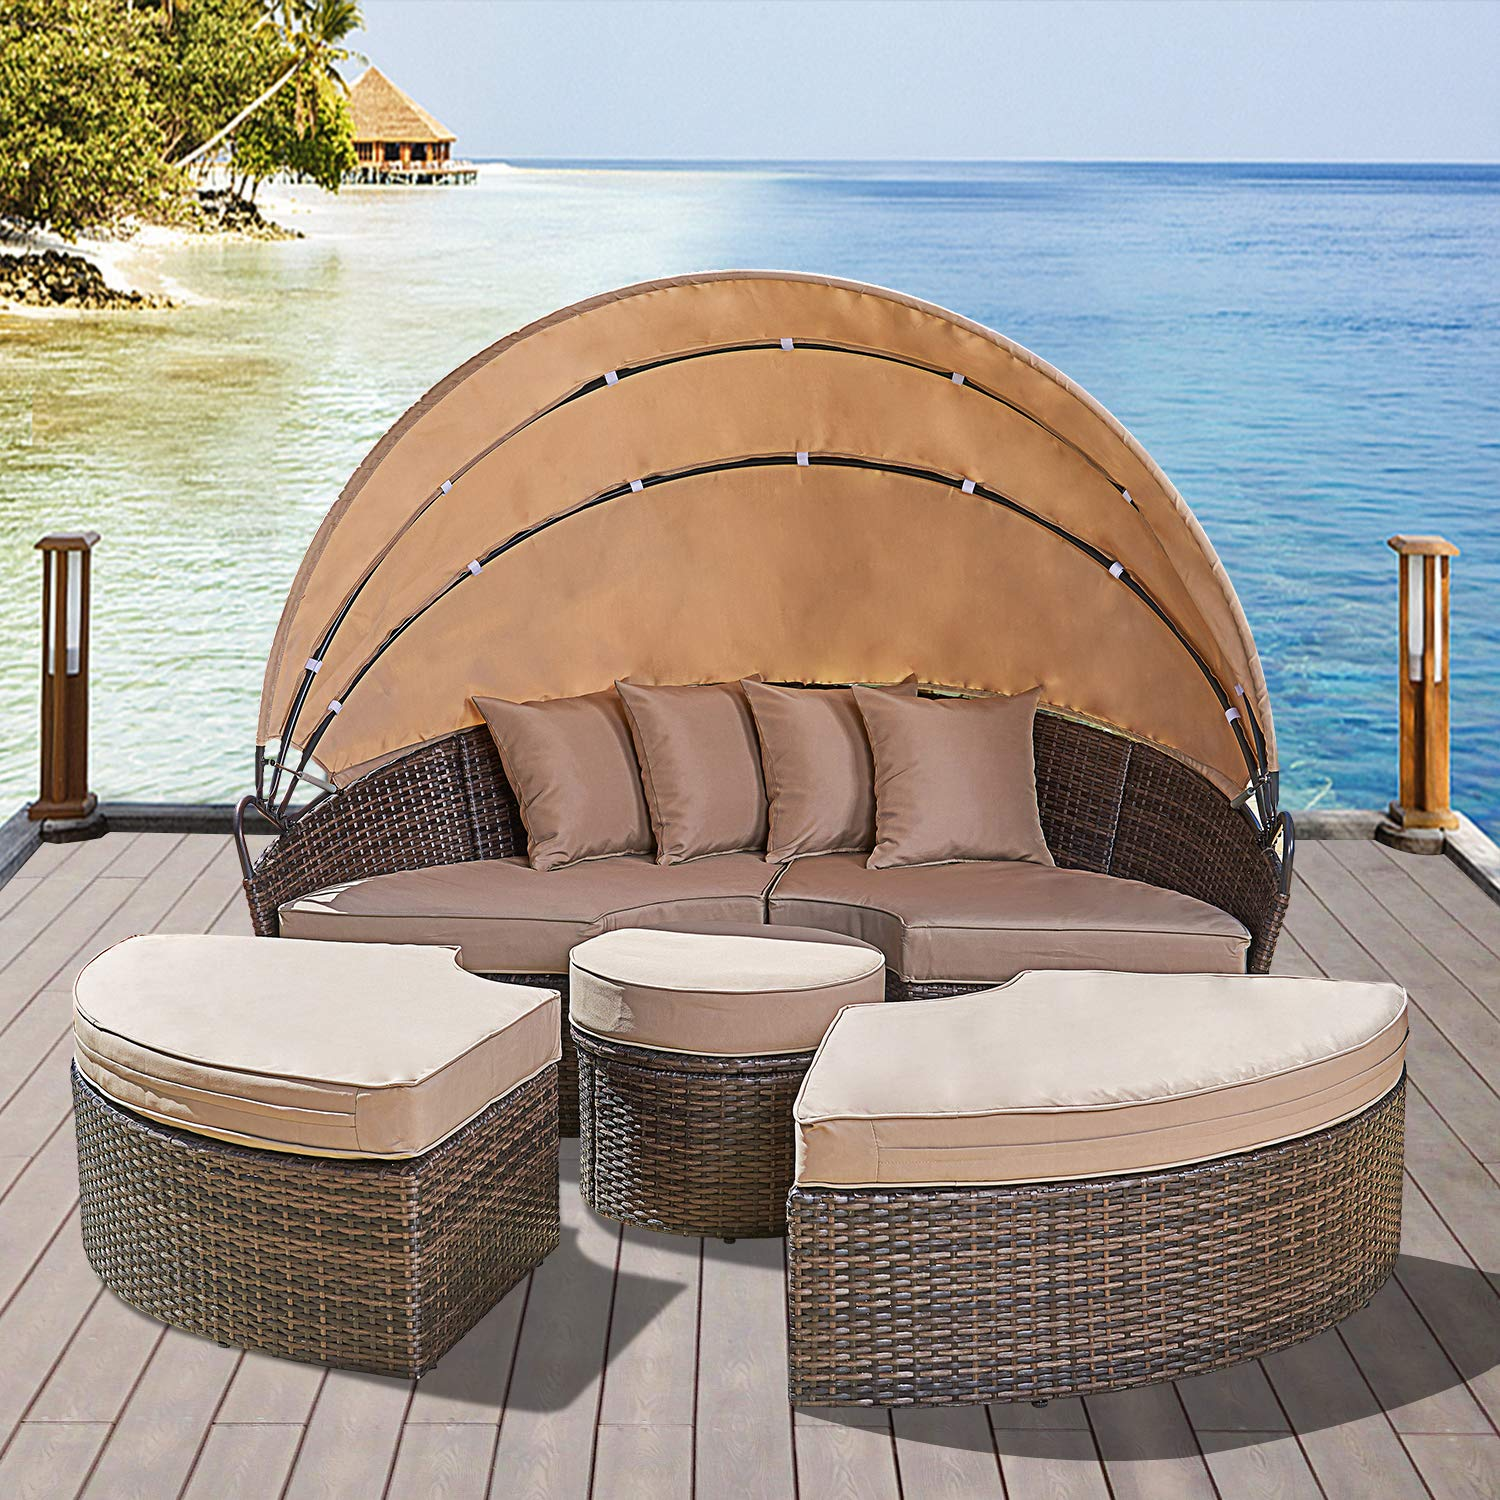 Solaura Outdoor Patio Round Daybed with Retractable Canopy and Brown Wicker, Seating Separates Cushioned Seats 4 Light Brown Pillow